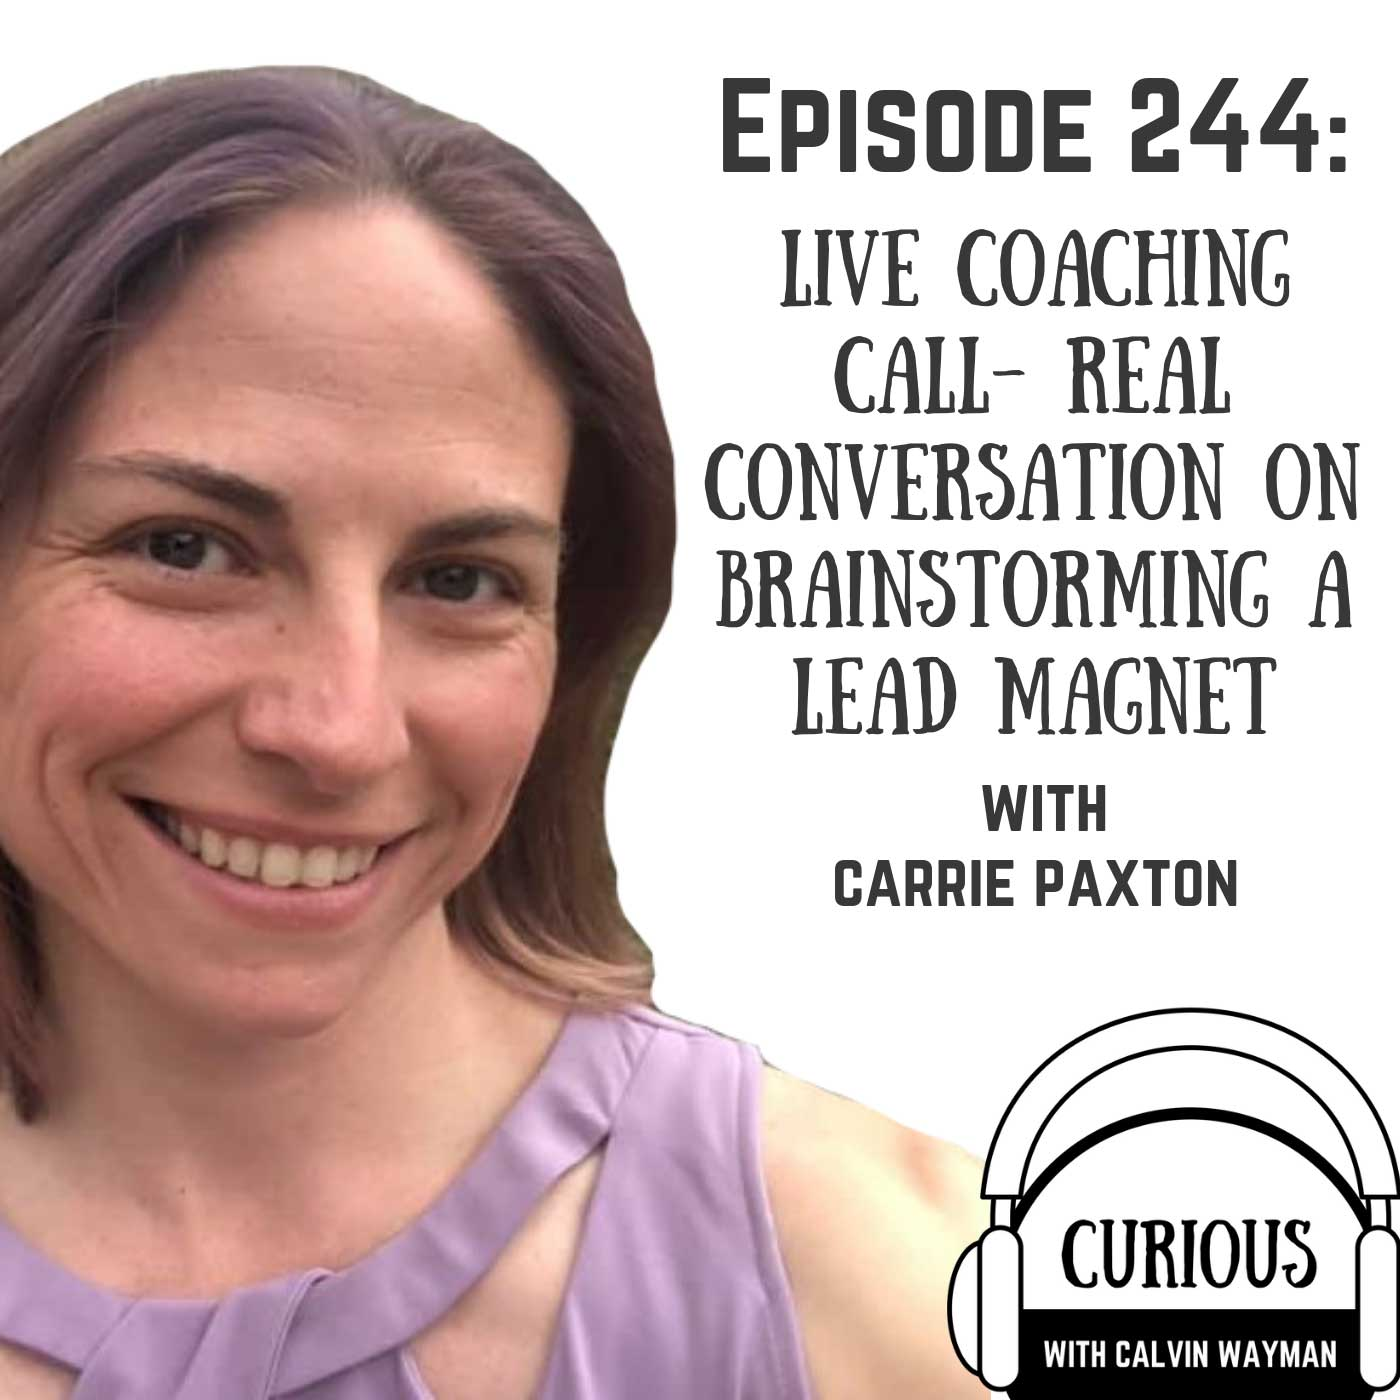 Ep244-Live Coaching Call: Real Conversation on Brainstorming a Lead Magnet